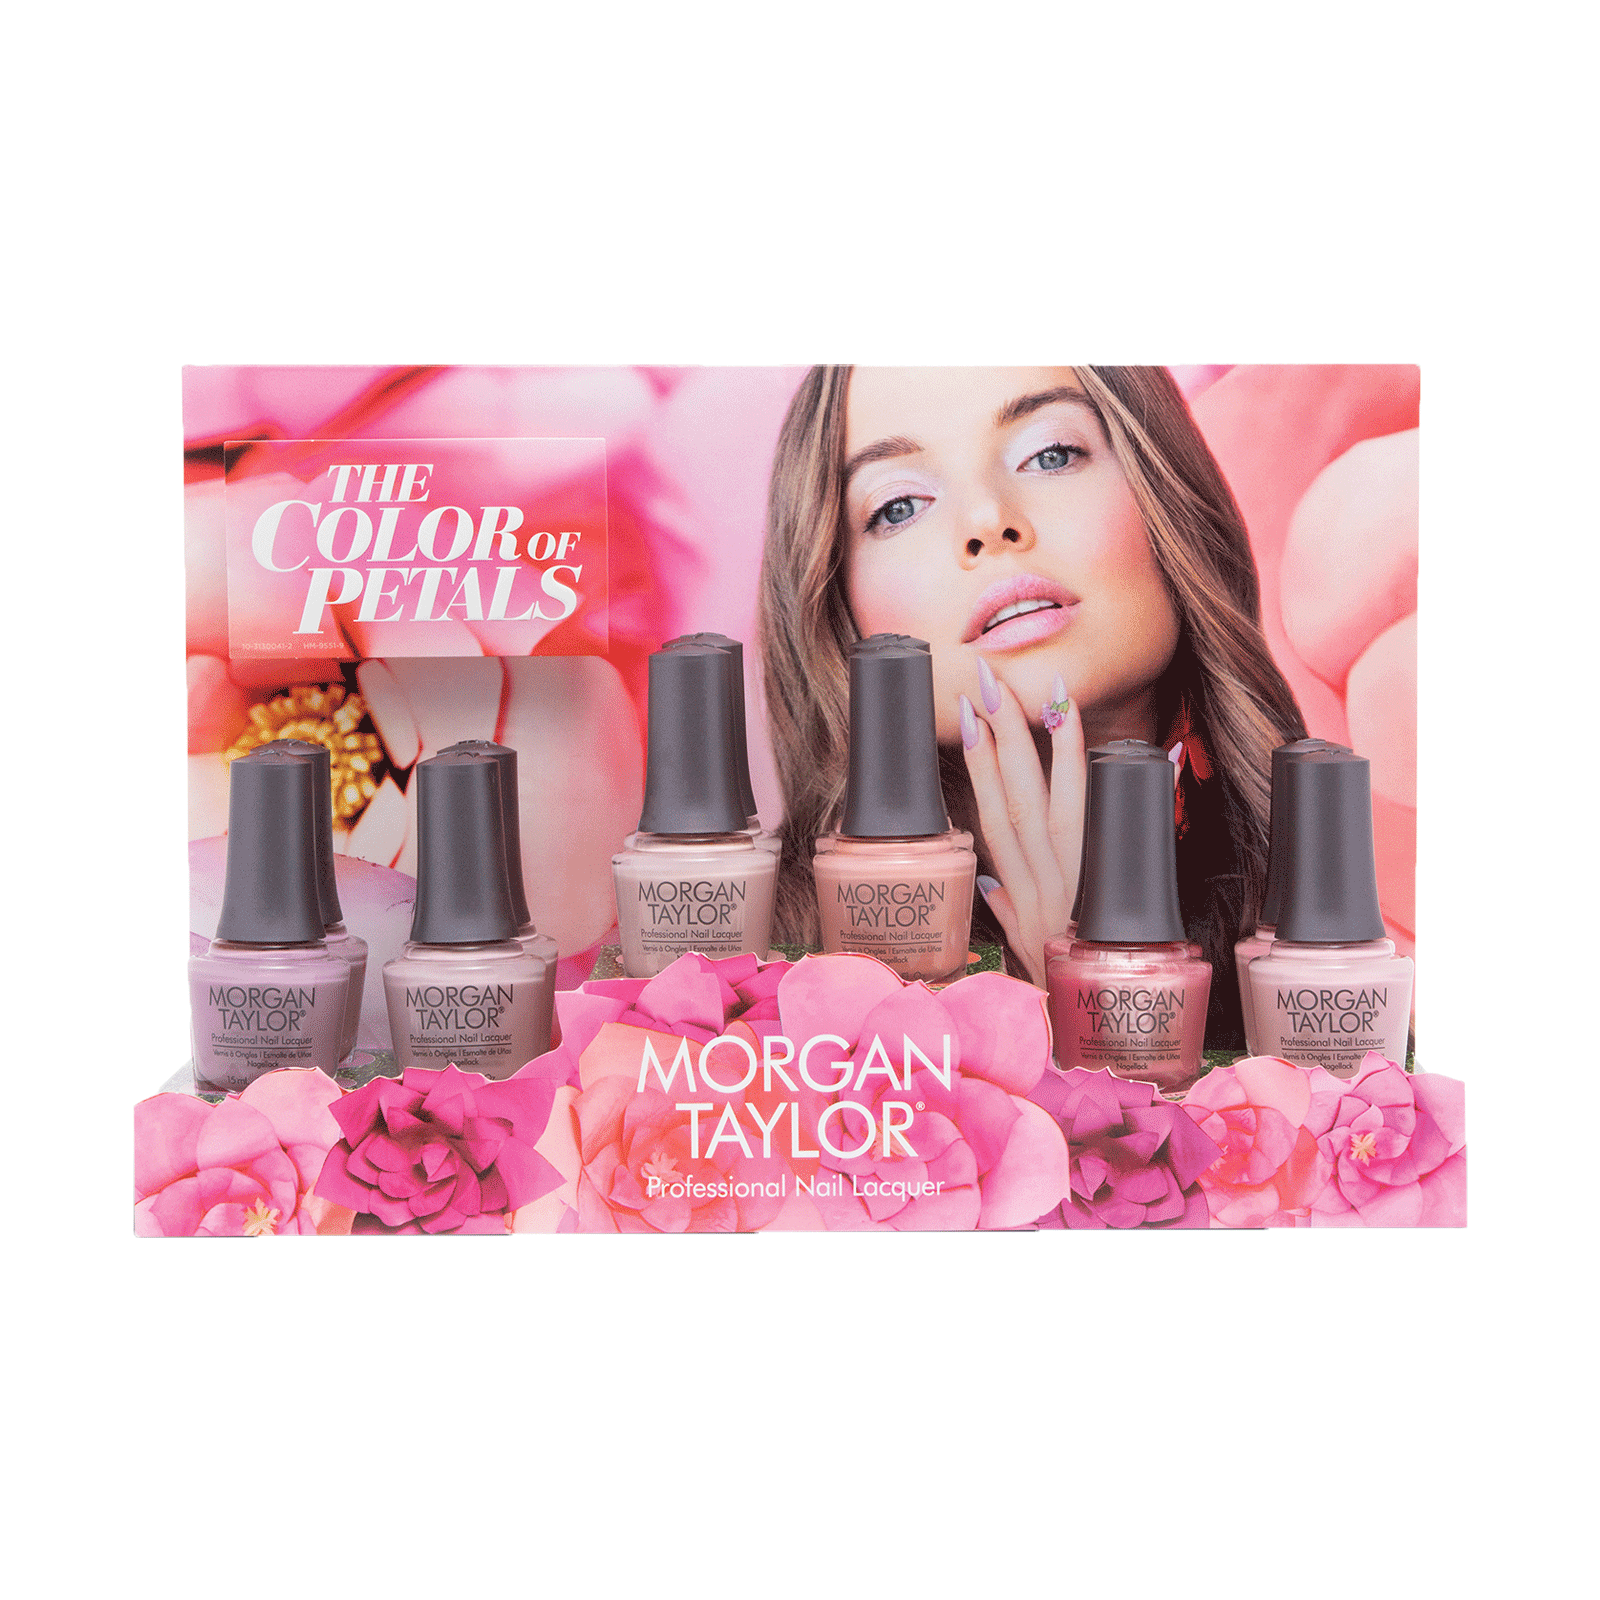 The Color of Petals - 12 Piece Display